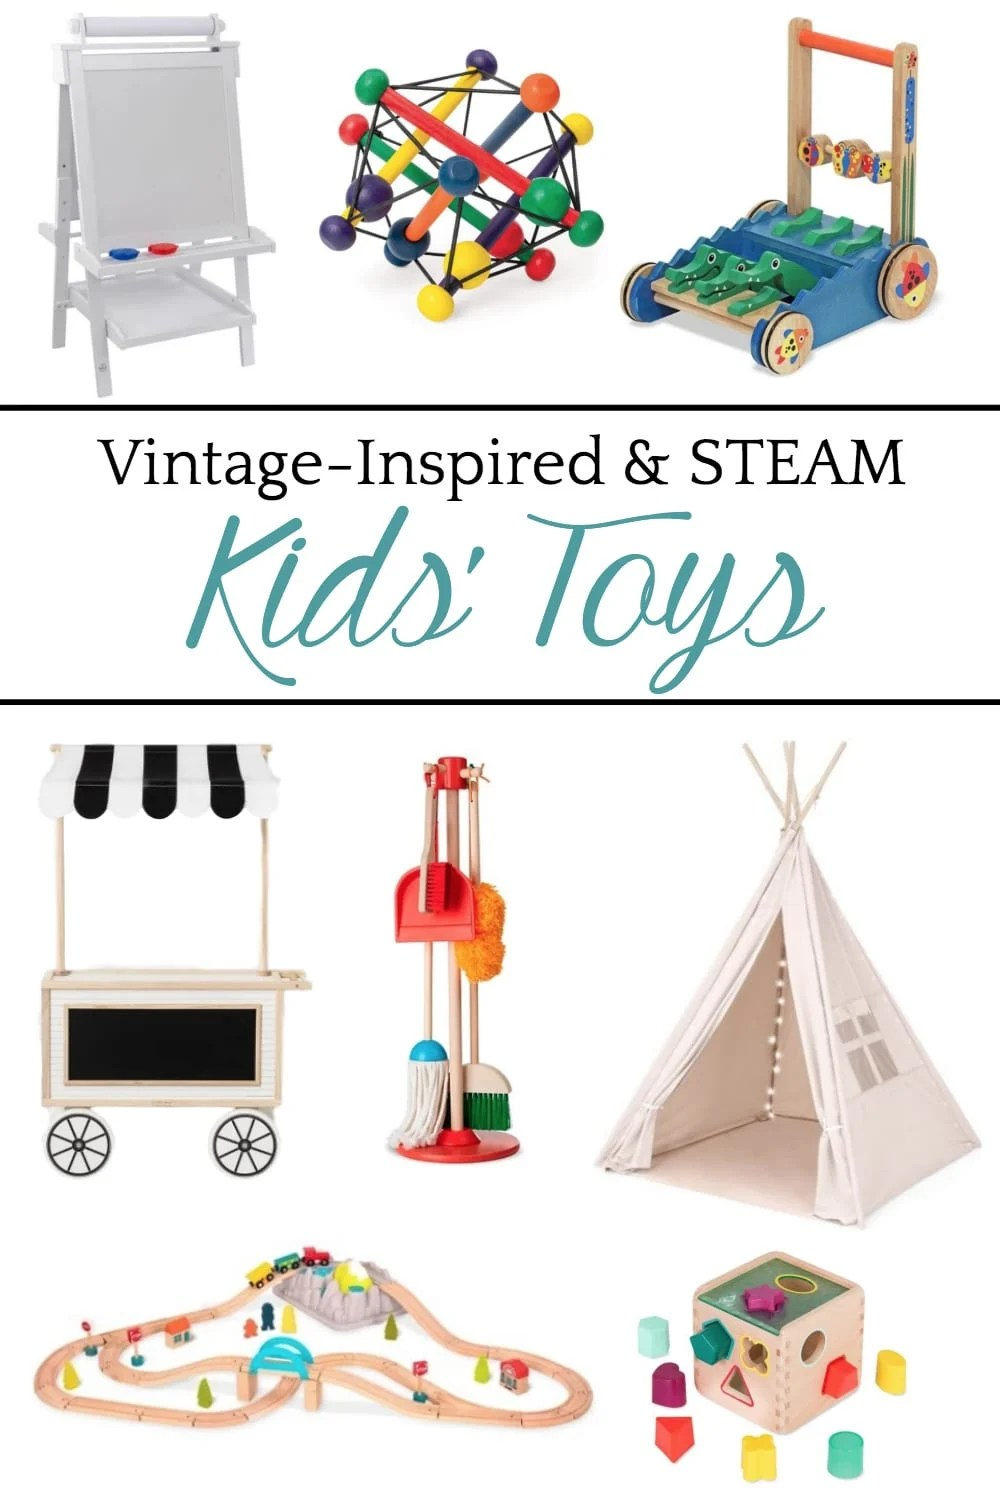 A round-up shopping guide of the most highly rated streamlined modern baby gear and vintage-inspired STEAM toys to inspire sensory development.